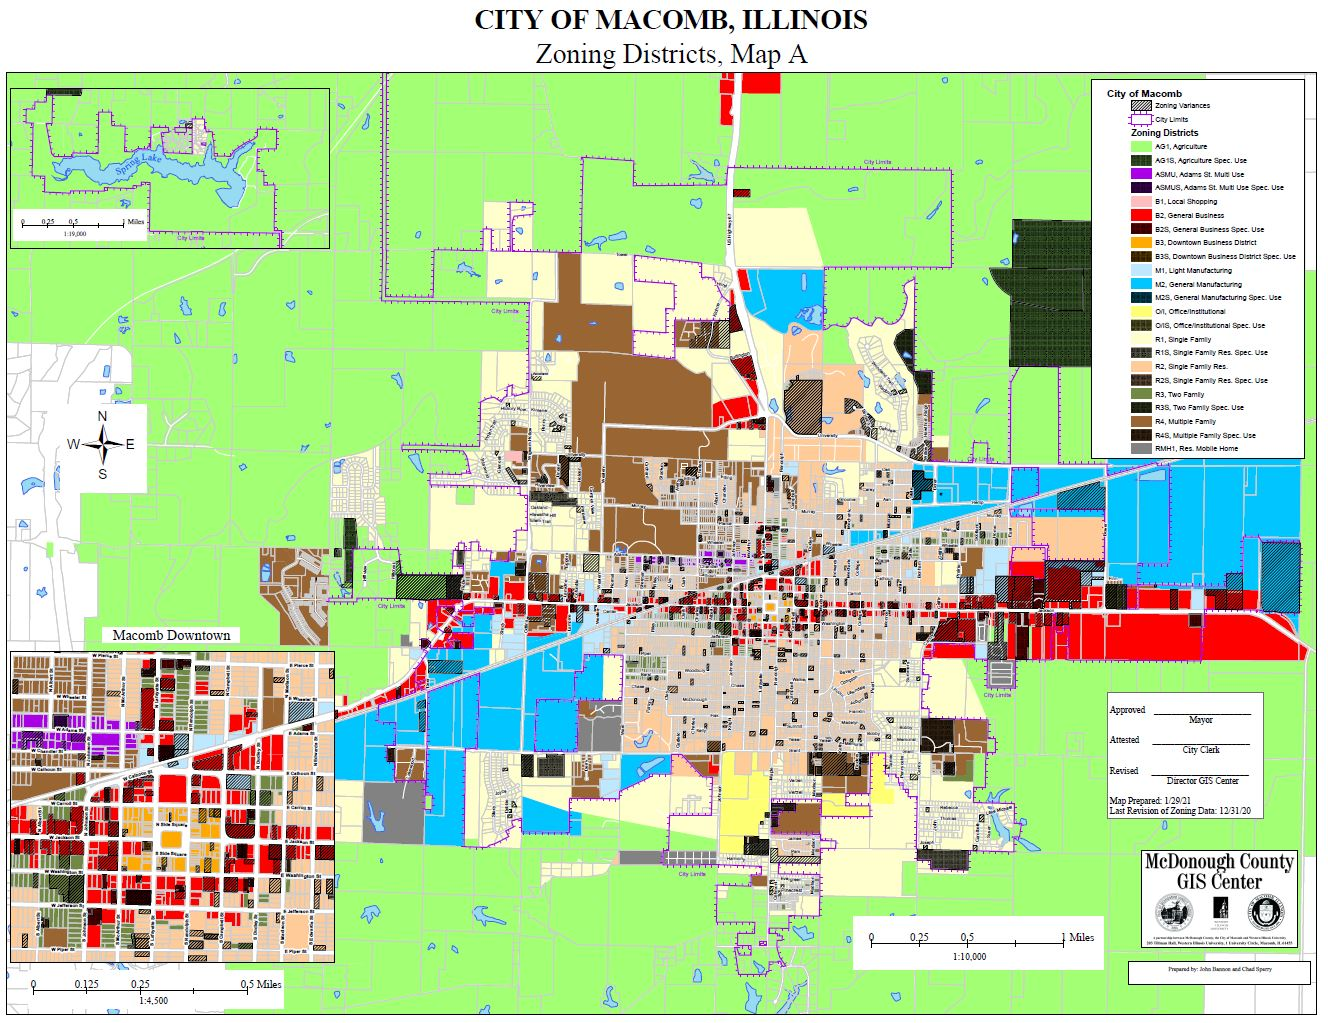 City of Macomb, Illinois - Zoning Map A